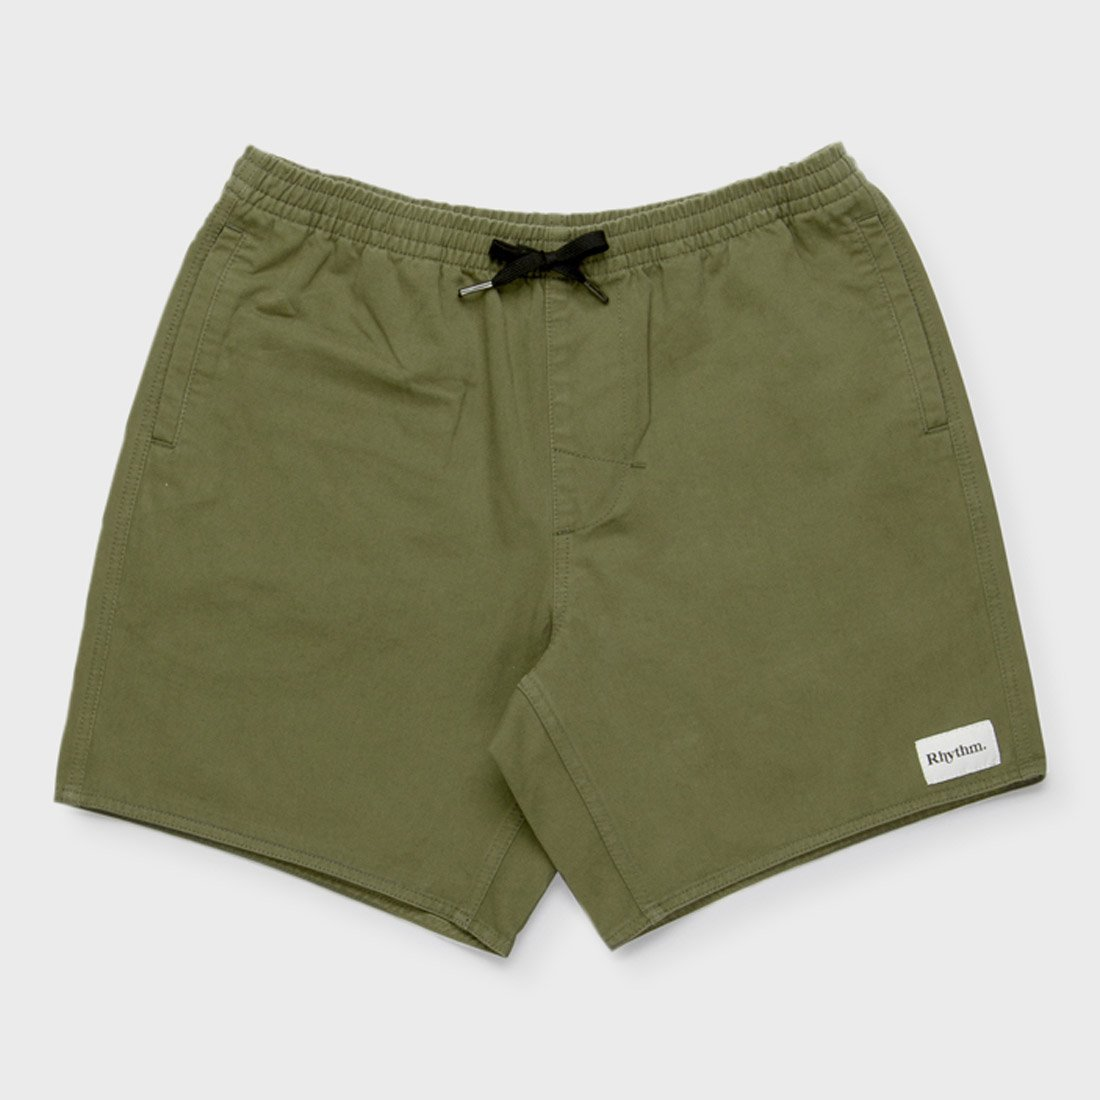 Rhythm Box Jam Short Olive